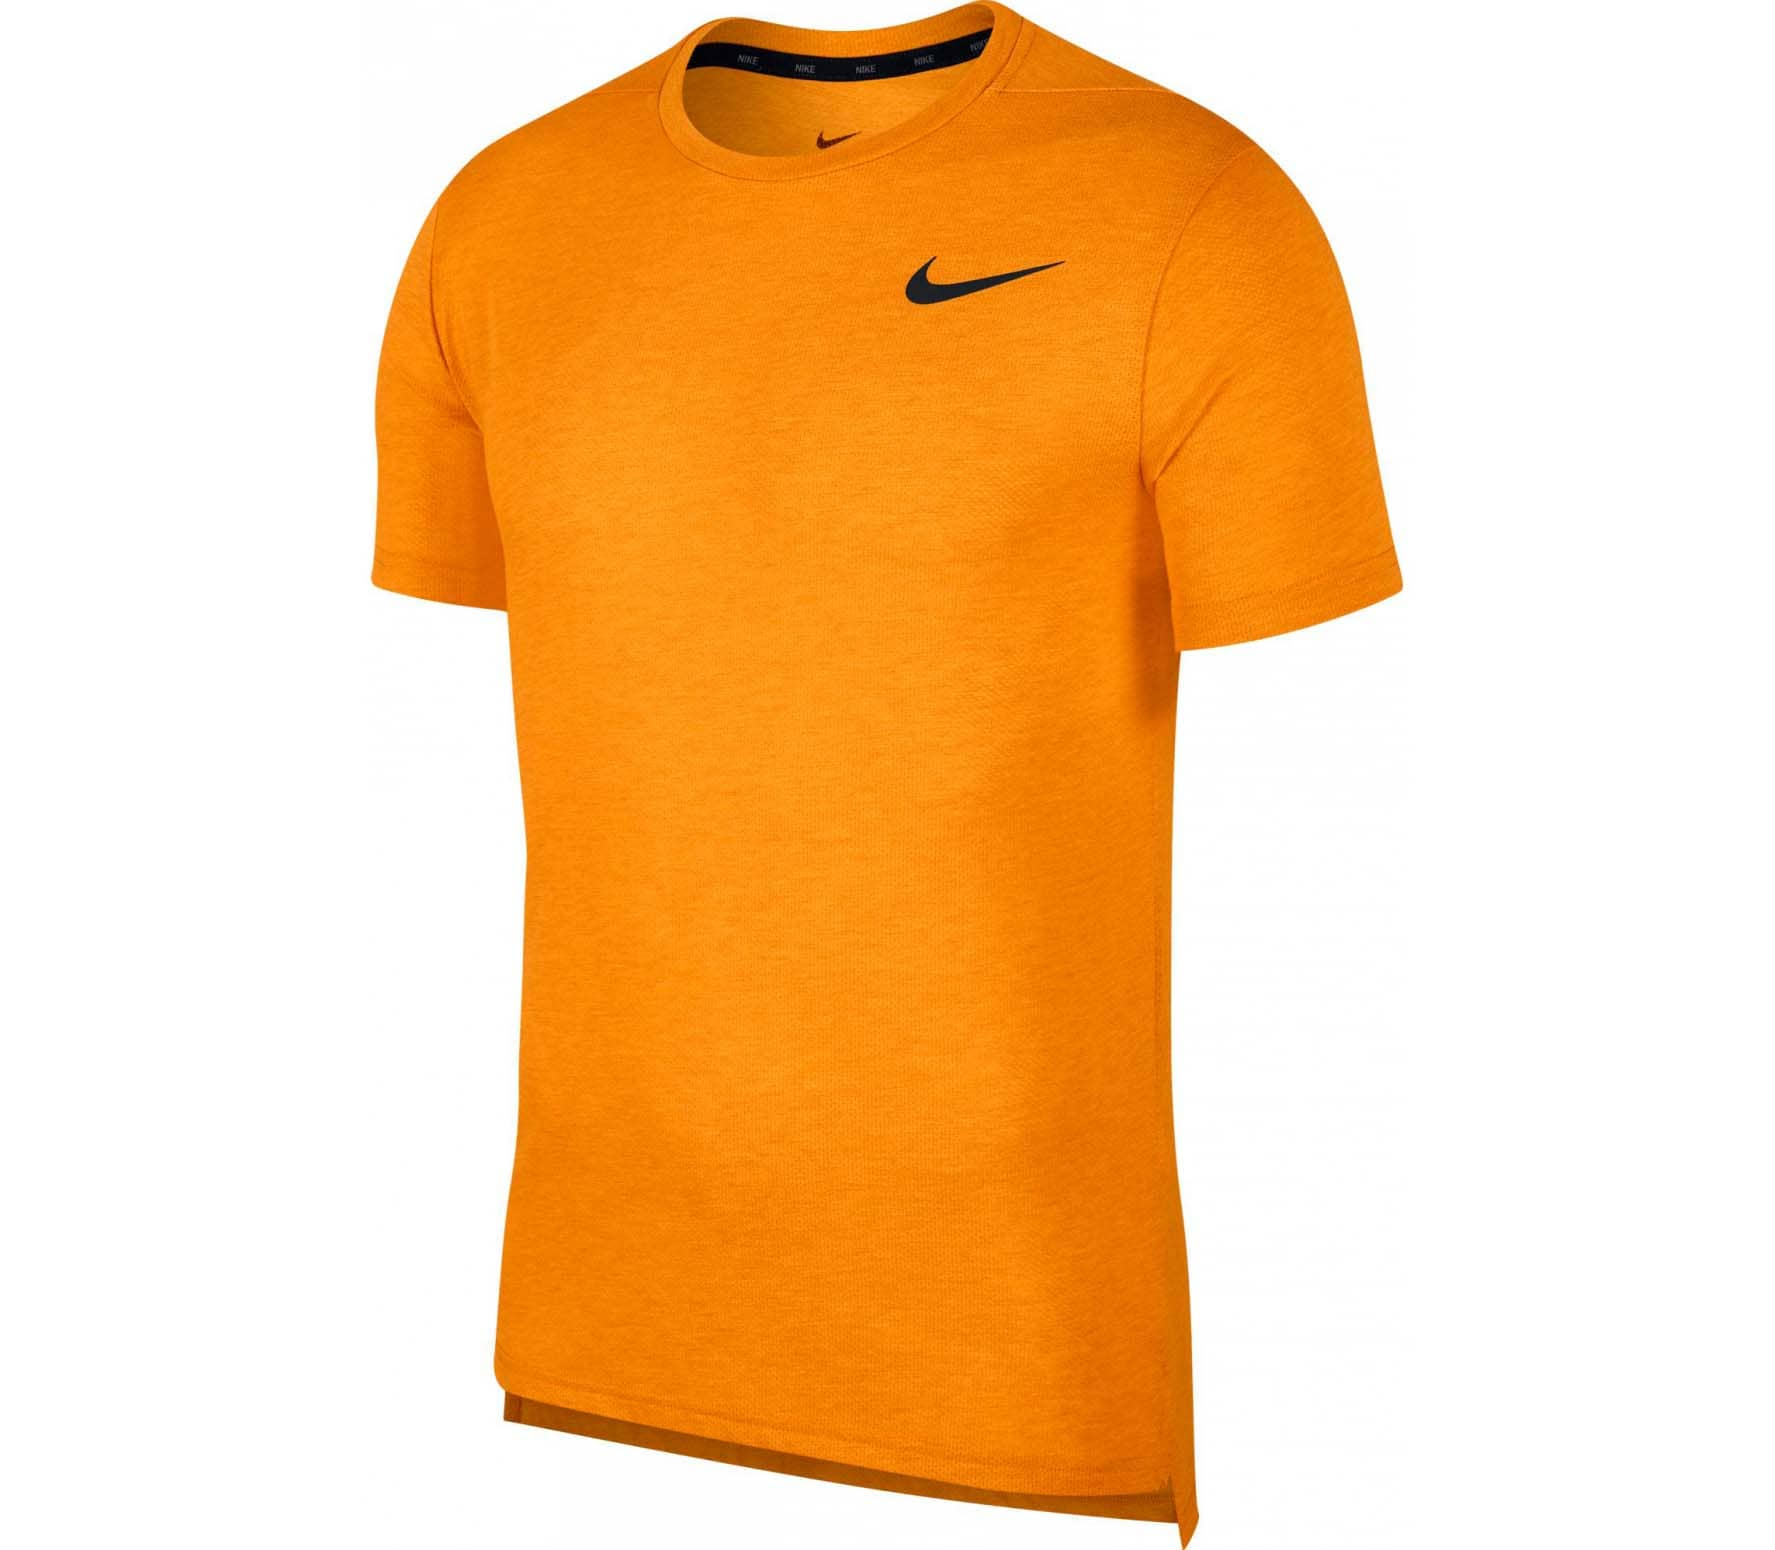 Nike Dri-FIT Breathe Herren